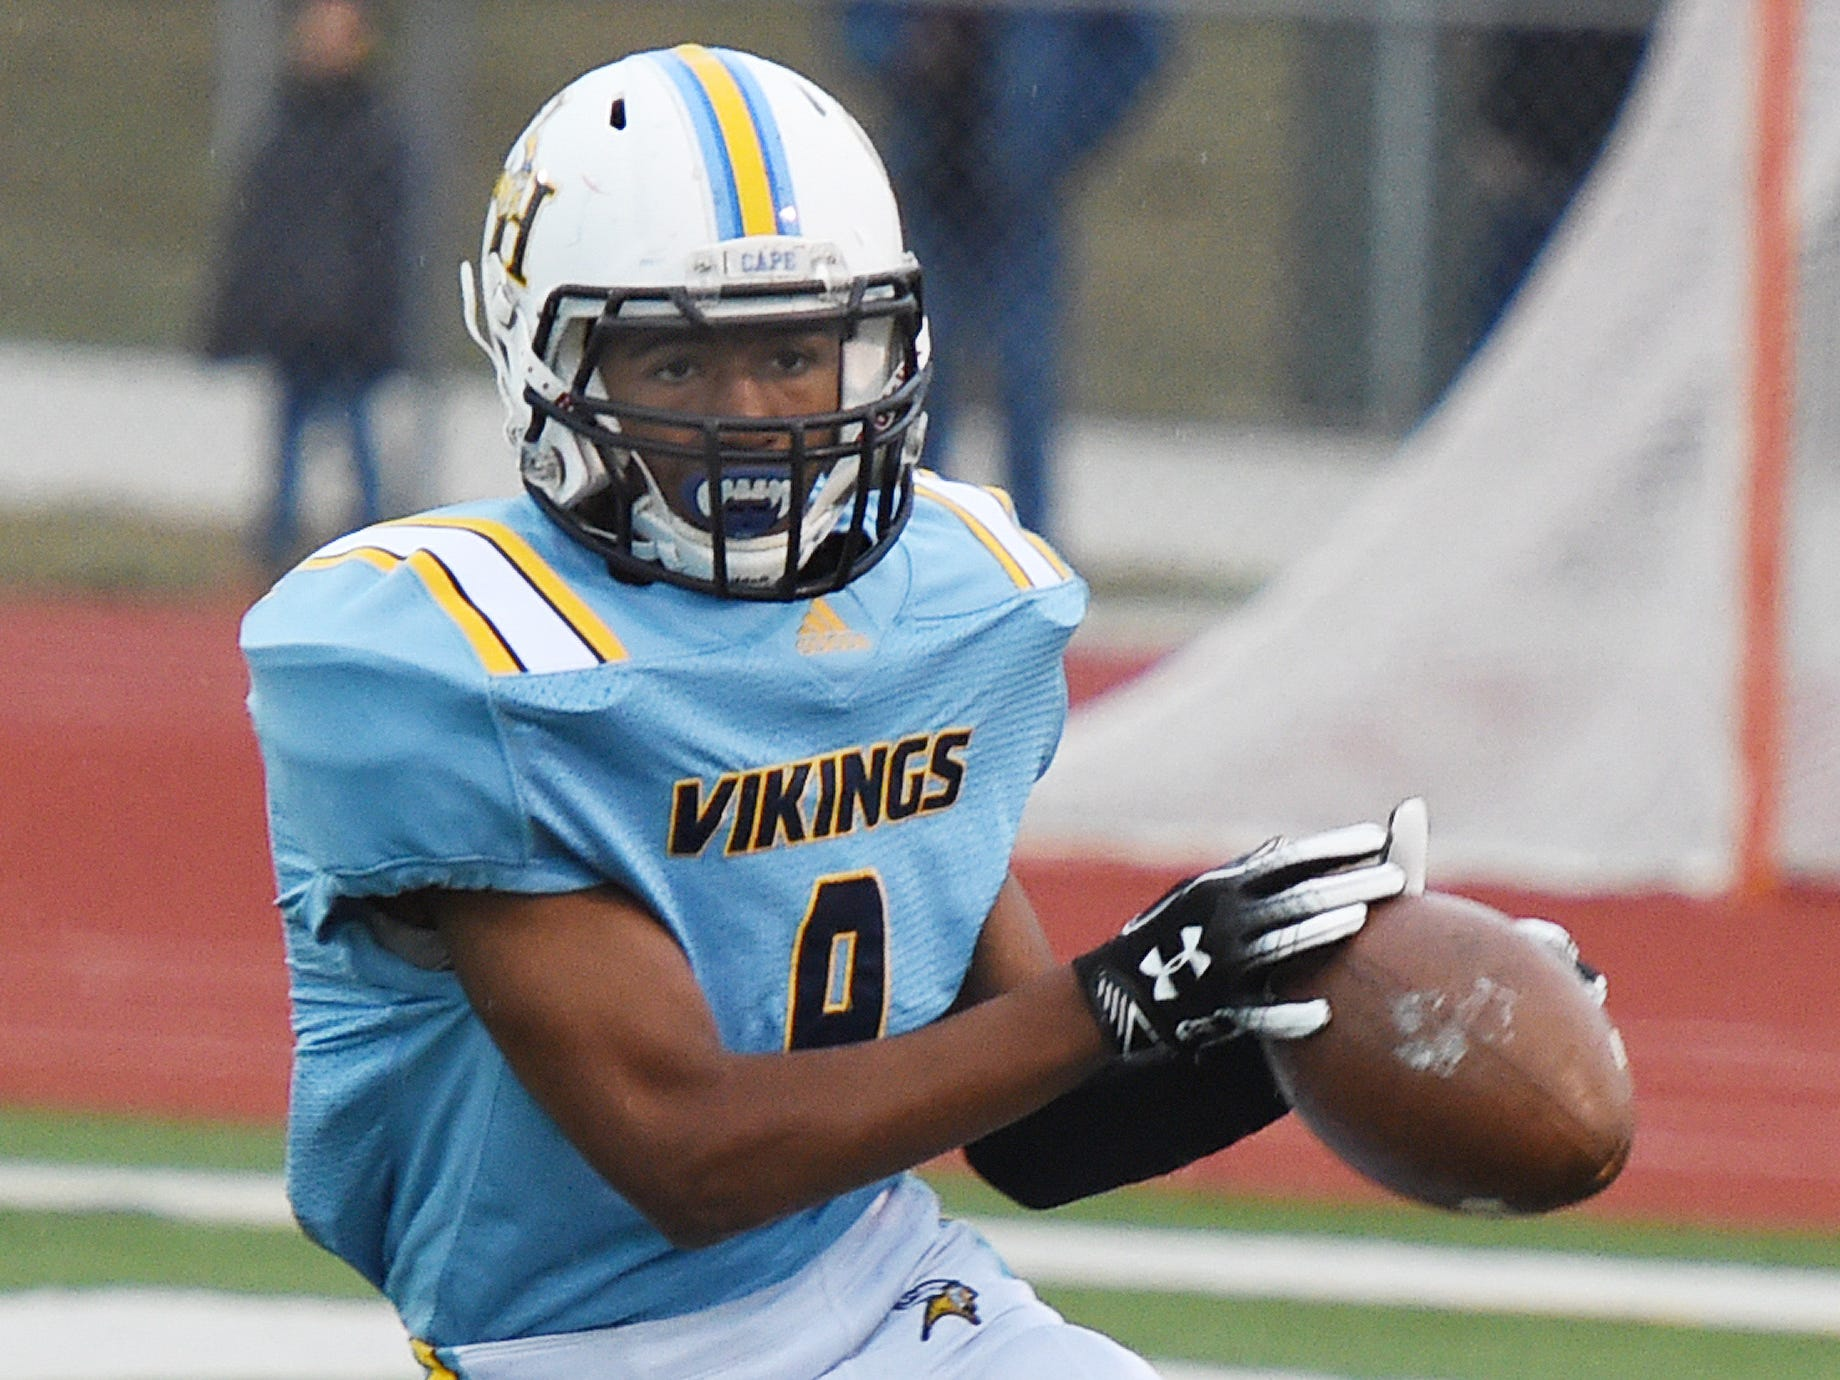 Cape Henlopen's Daniel Saez bobbles the ball during their varsity football game against Sussex Central at home Oct. 26, 2018, at  Legends Stadium near Lewes. Cape lost 43-0 to Sussex Central.